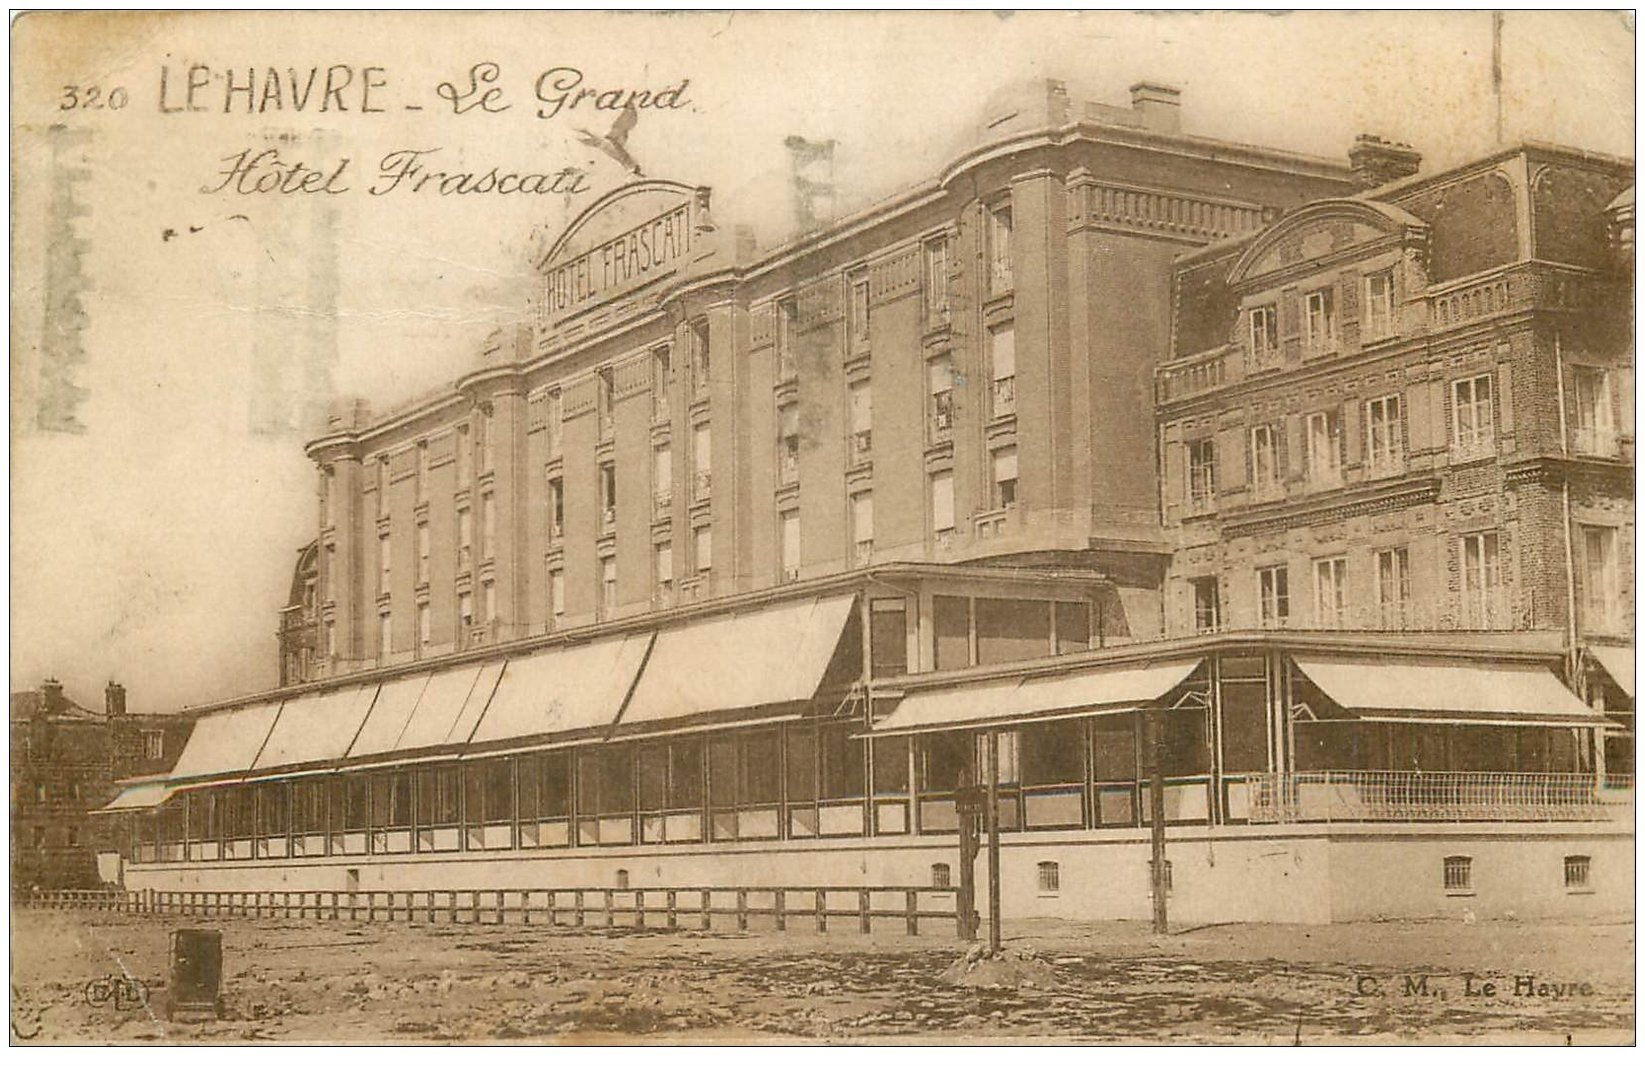 76 le havre le grand h tel frascati 1932 for Boutique hotel le havre